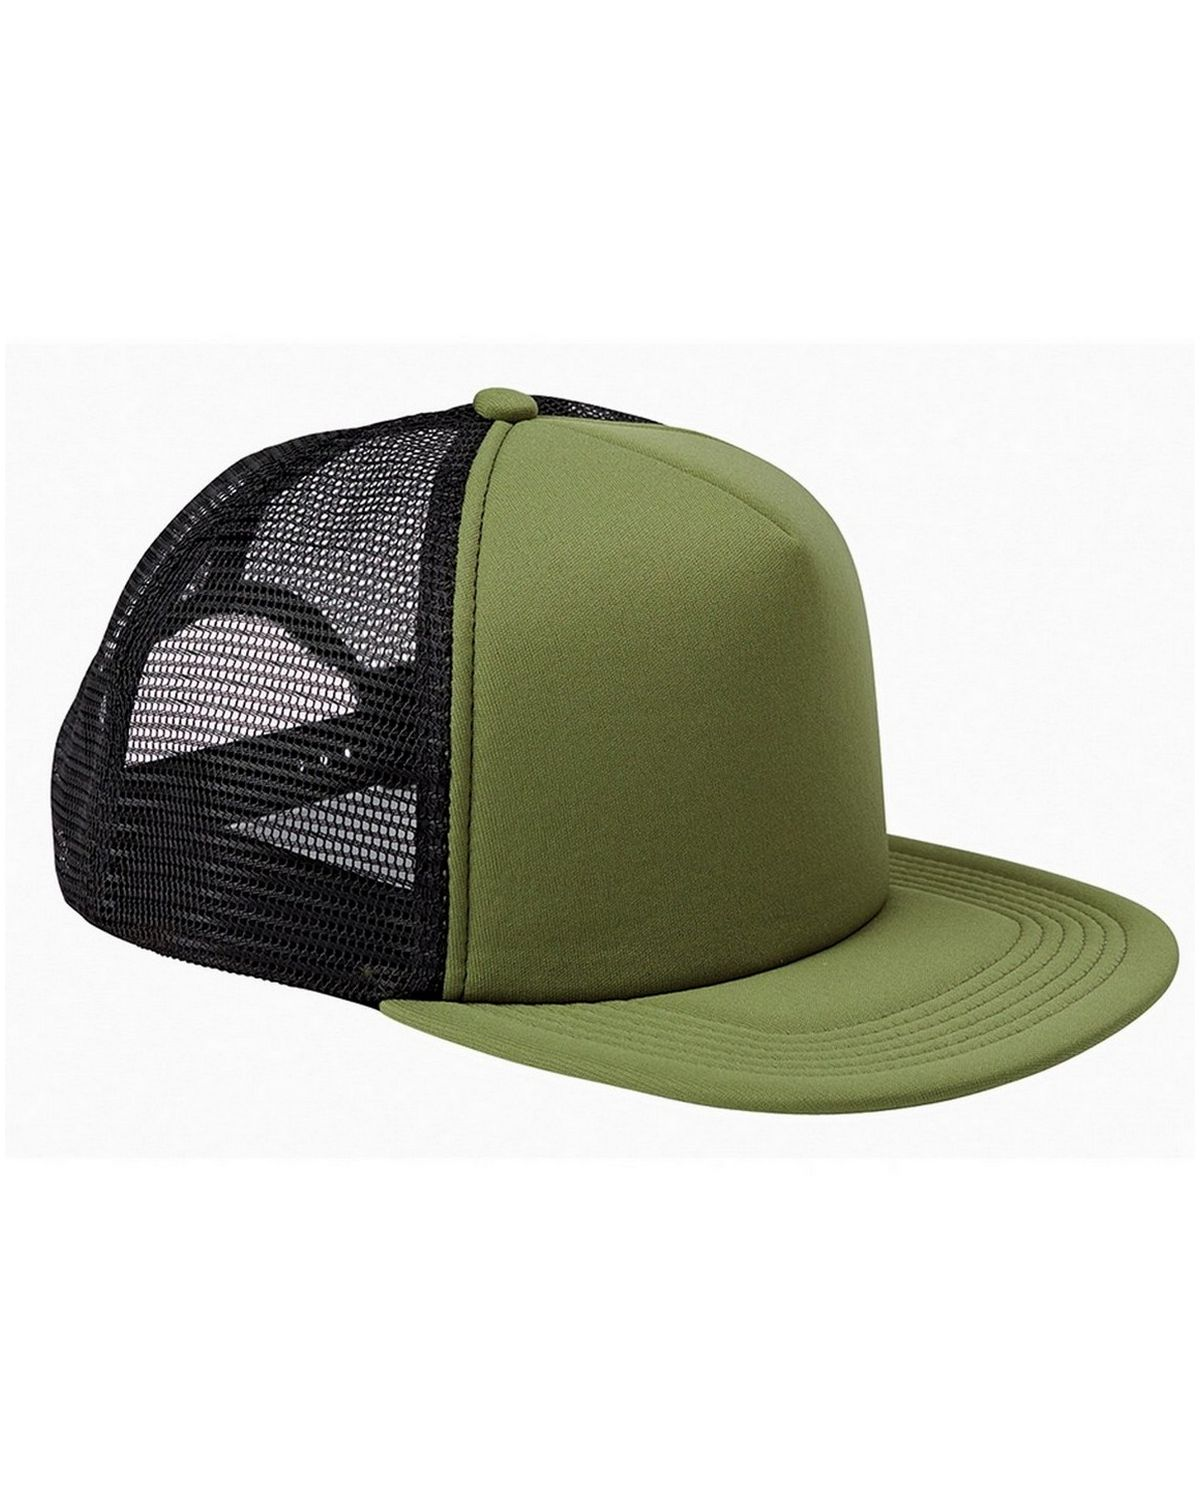 Big Accessories BX030 5 Panel Foam Front Trucker Cap - Olive/Black - One Size BX030